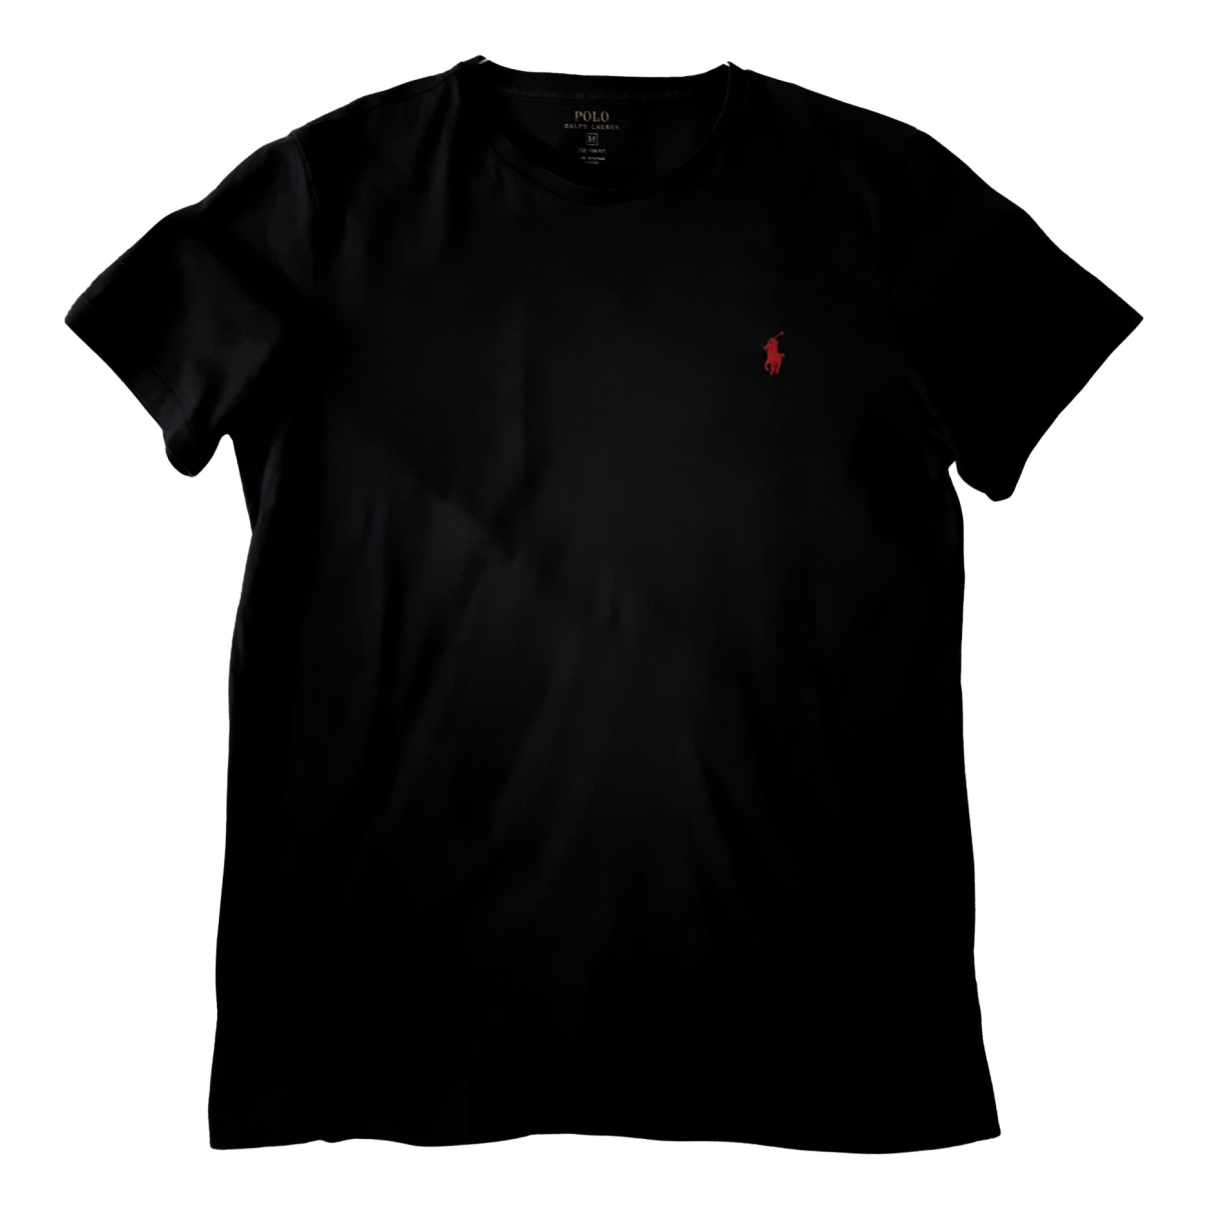 Polo Ralph Lauren \N Black Cotton T-shirts for Men M International